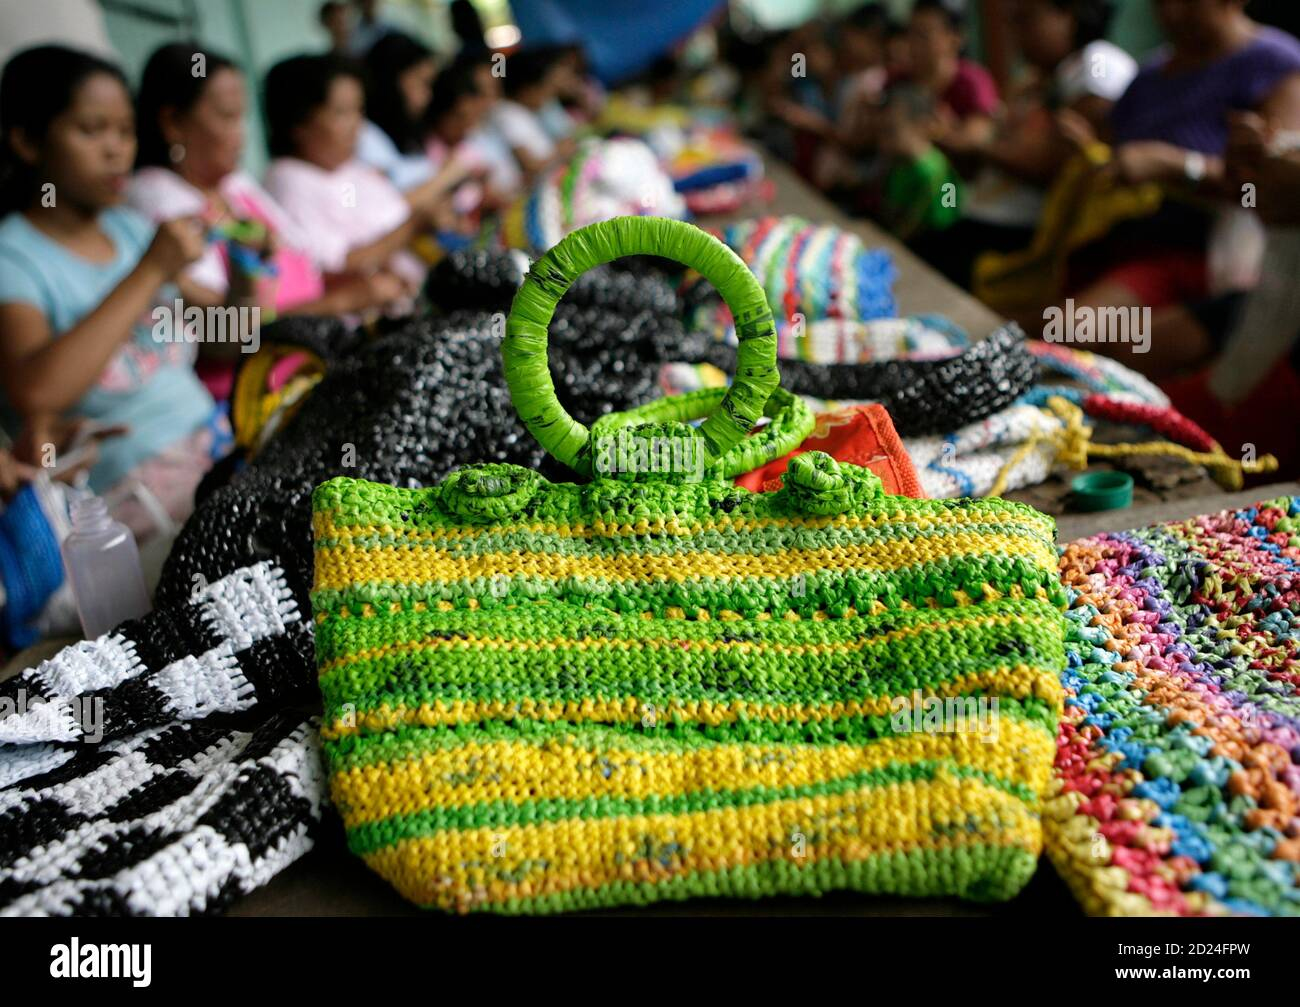 women crochet bags made from recycled plastic bags in manila june 9 2009 women in poor areas of manila have been trained by a non government organization to crochet bags totes hats and other accessories using recycled plastic bags and sell them for between 500 to 1500 pesos 10 30 reuterscheryl ravelo philippines society environment 2D24FPW